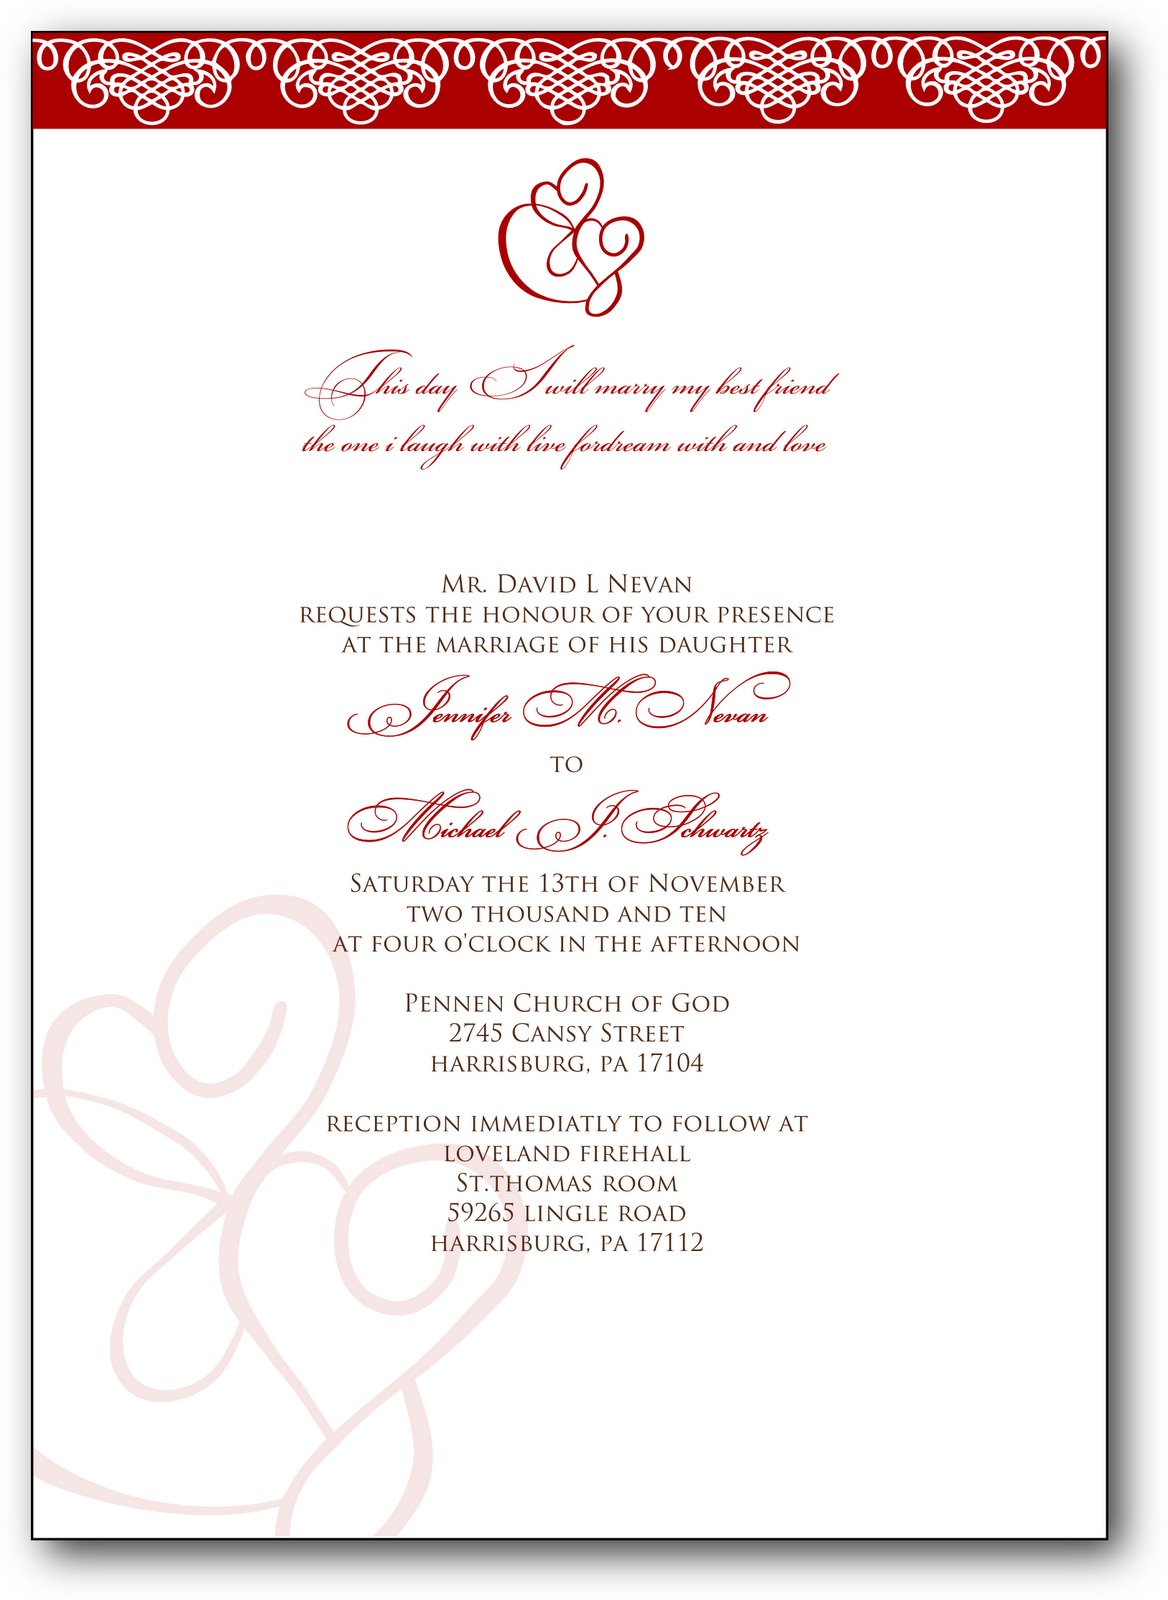 Signatures By Sarah Wedding Invitations For Madonna